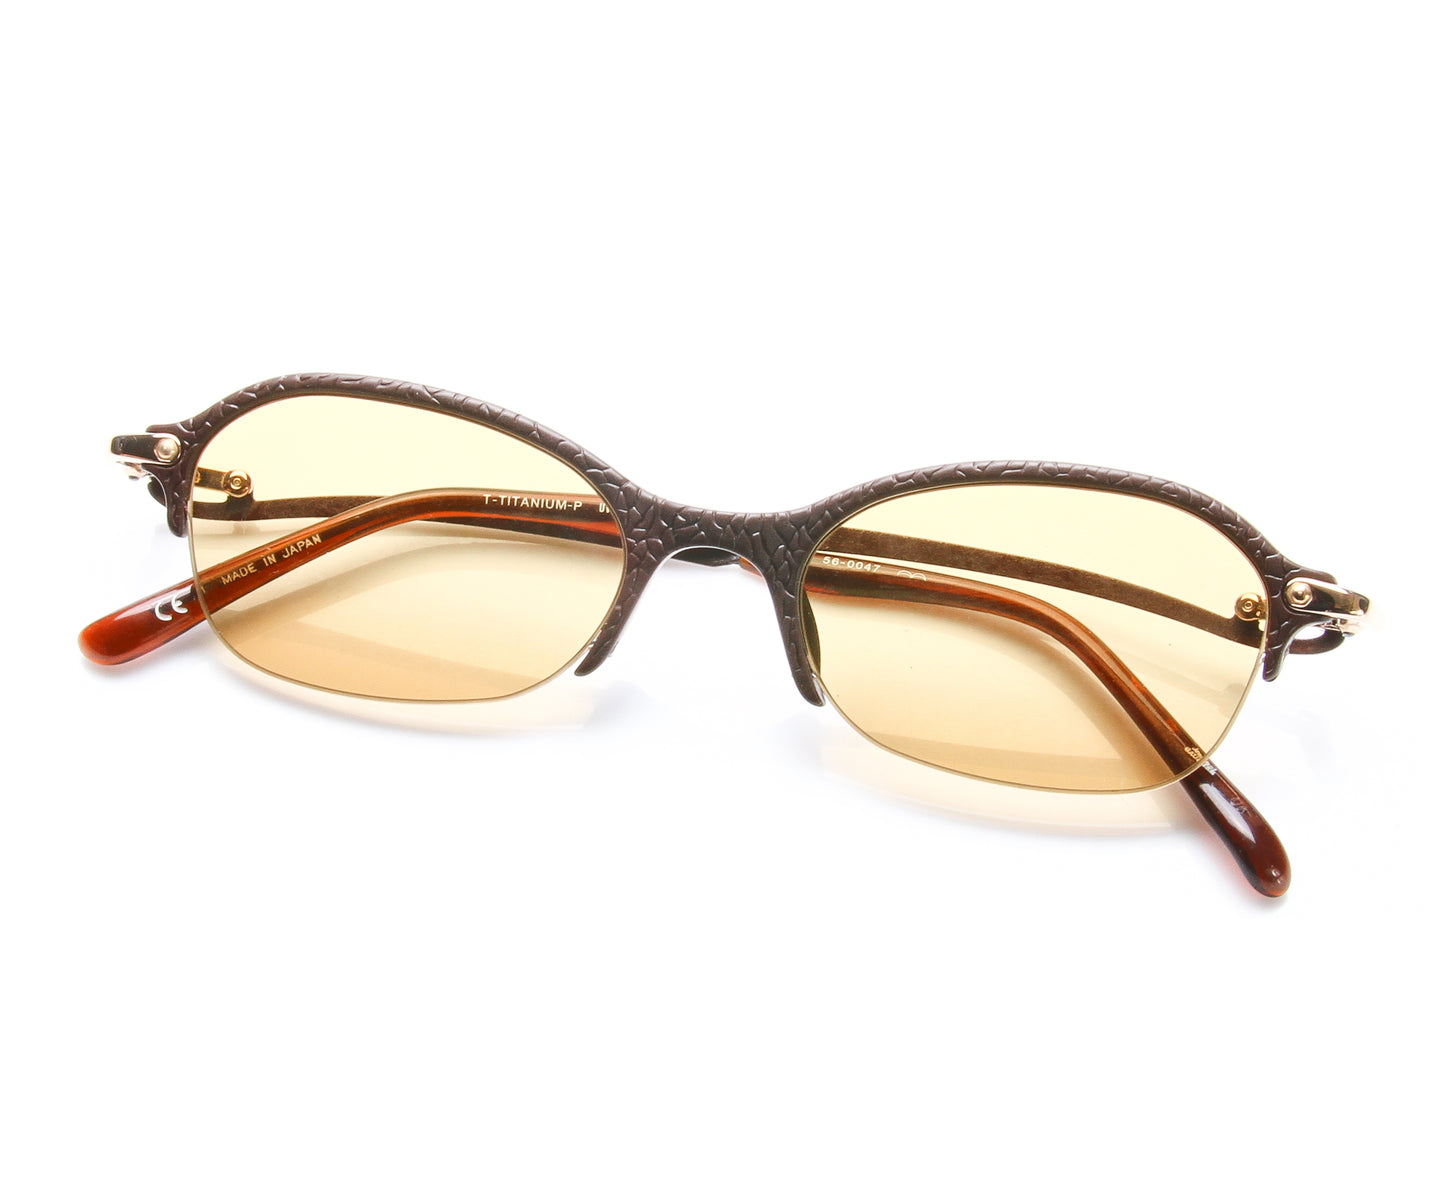 Jean Paul Gaultier 56 0047 1, Jean Paul Gaultier , glasses frames, eyeglasses online, eyeglass frames, mens glasses, womens glasses, buy glasses online, designer eyeglasses, vintage sunglasses, retro sunglasses, vintage glasses, sunglass, eyeglass, glasses, lens, vintage frames company, vf